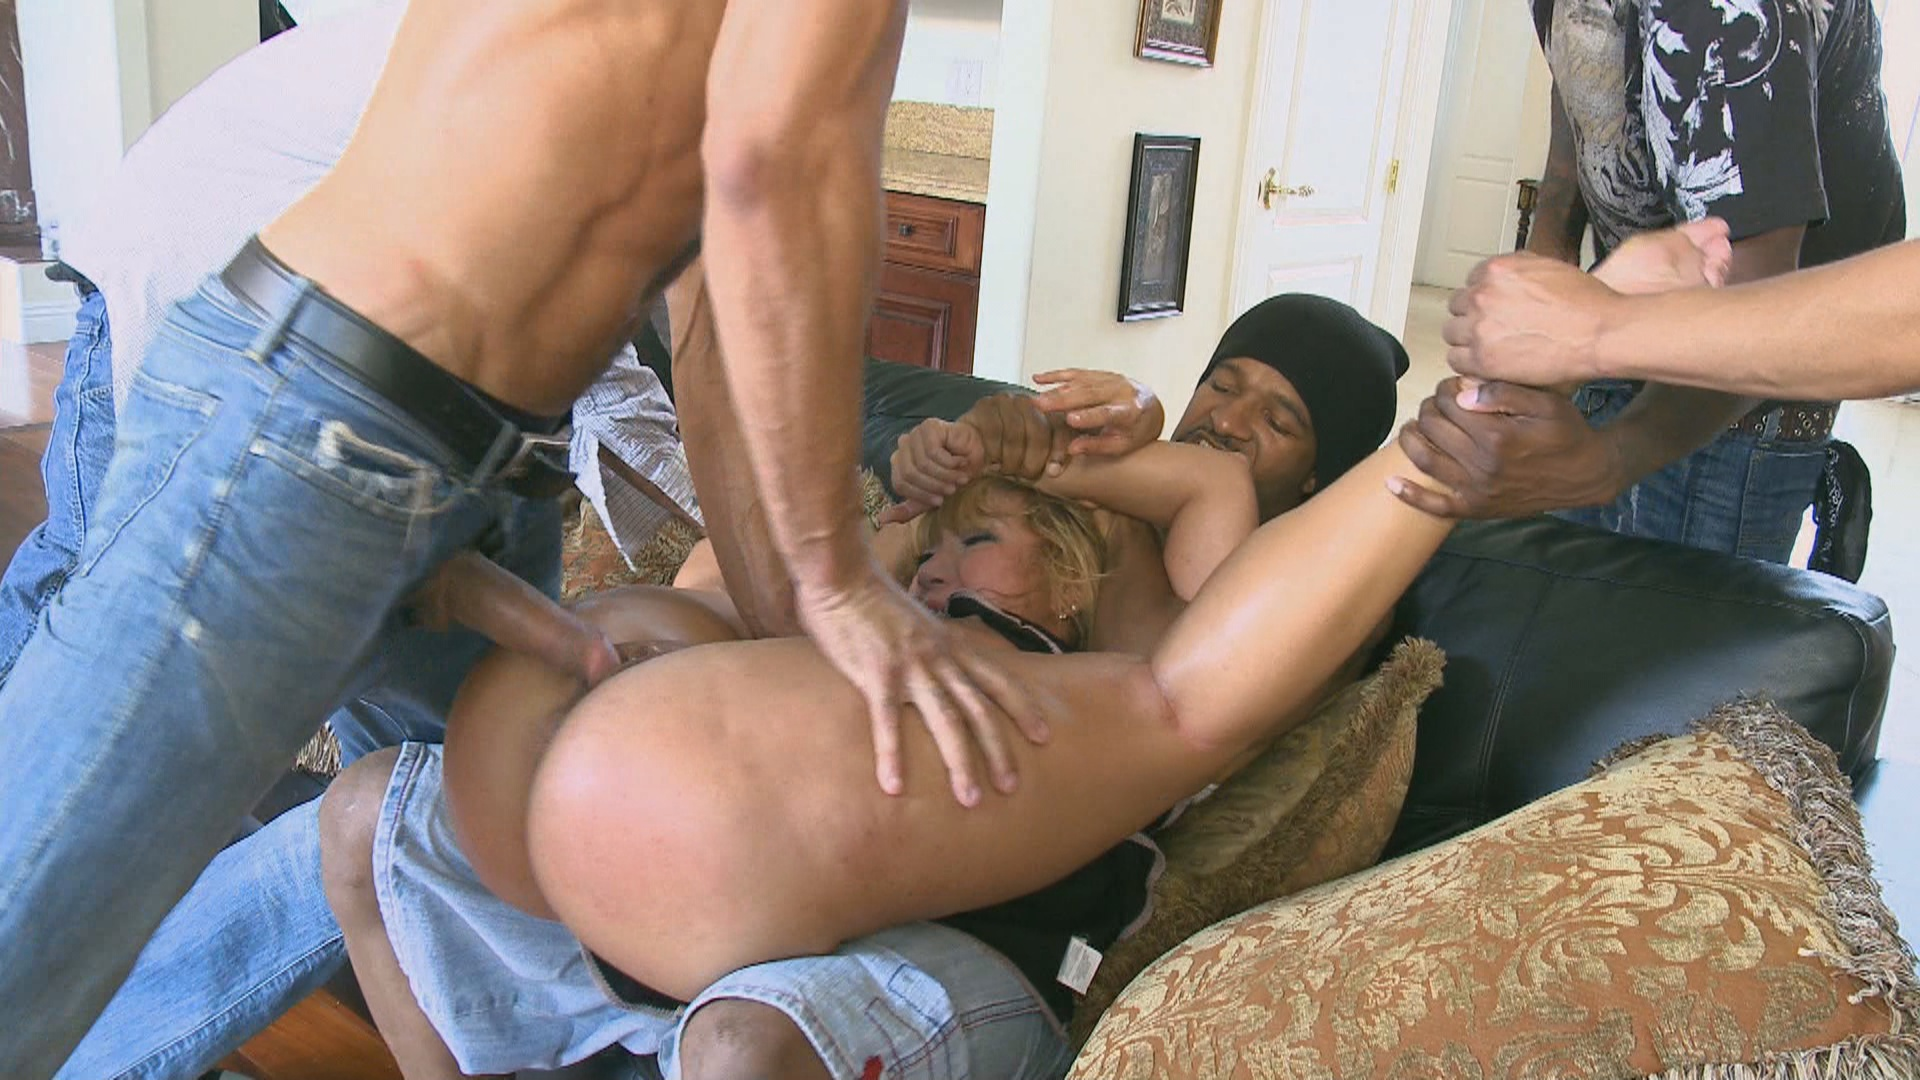 Hardcore Gangbang: Rich MILF Taken Down And Gangbanged By Her Daughters Black Thug Friends Xvideos